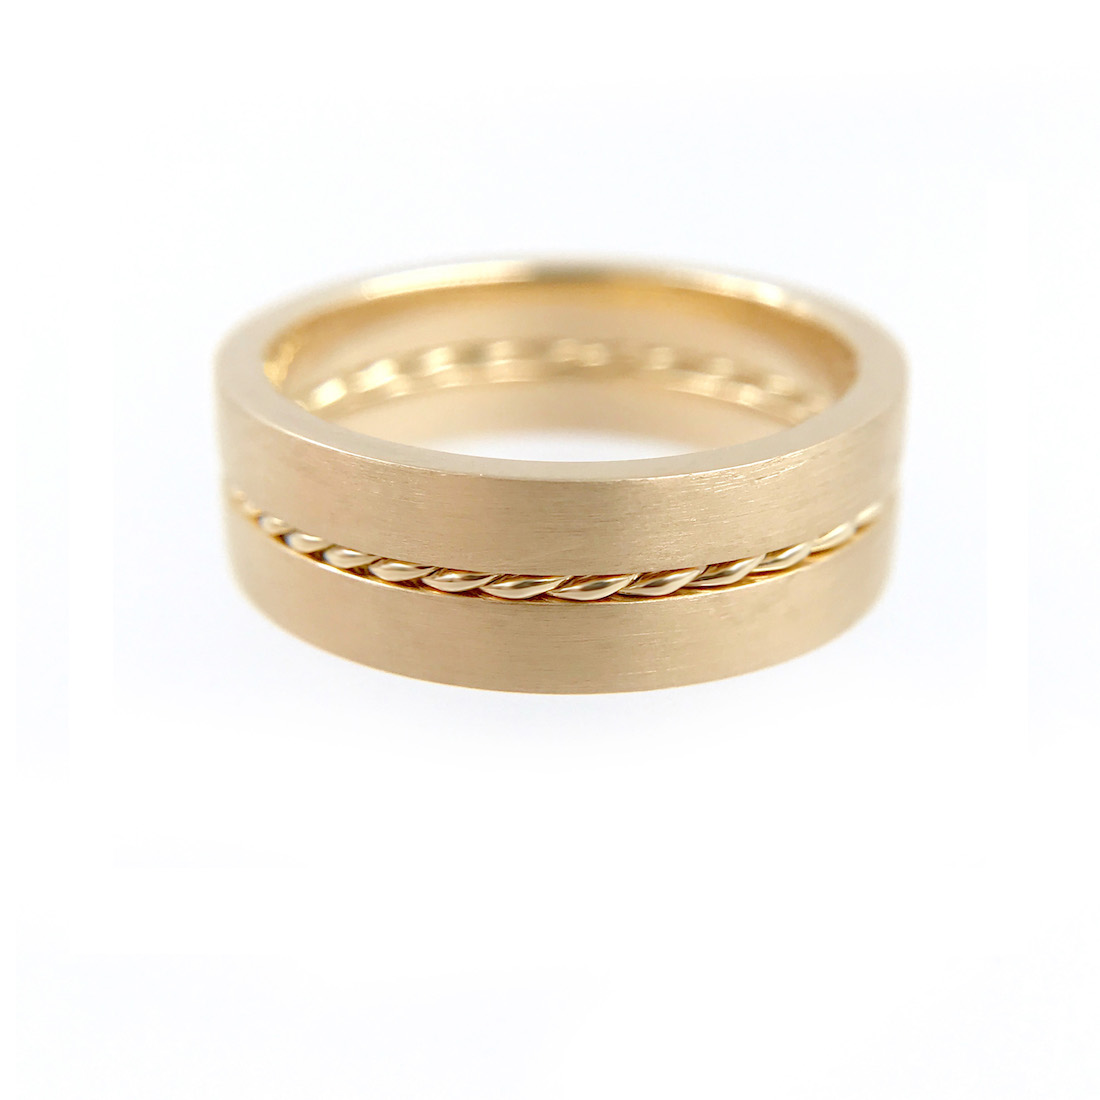 53-Chic-square-3mm-Satin-Gold-Band-Ring-Guard-Spacer-14k-18k-JeweLyrie_8006